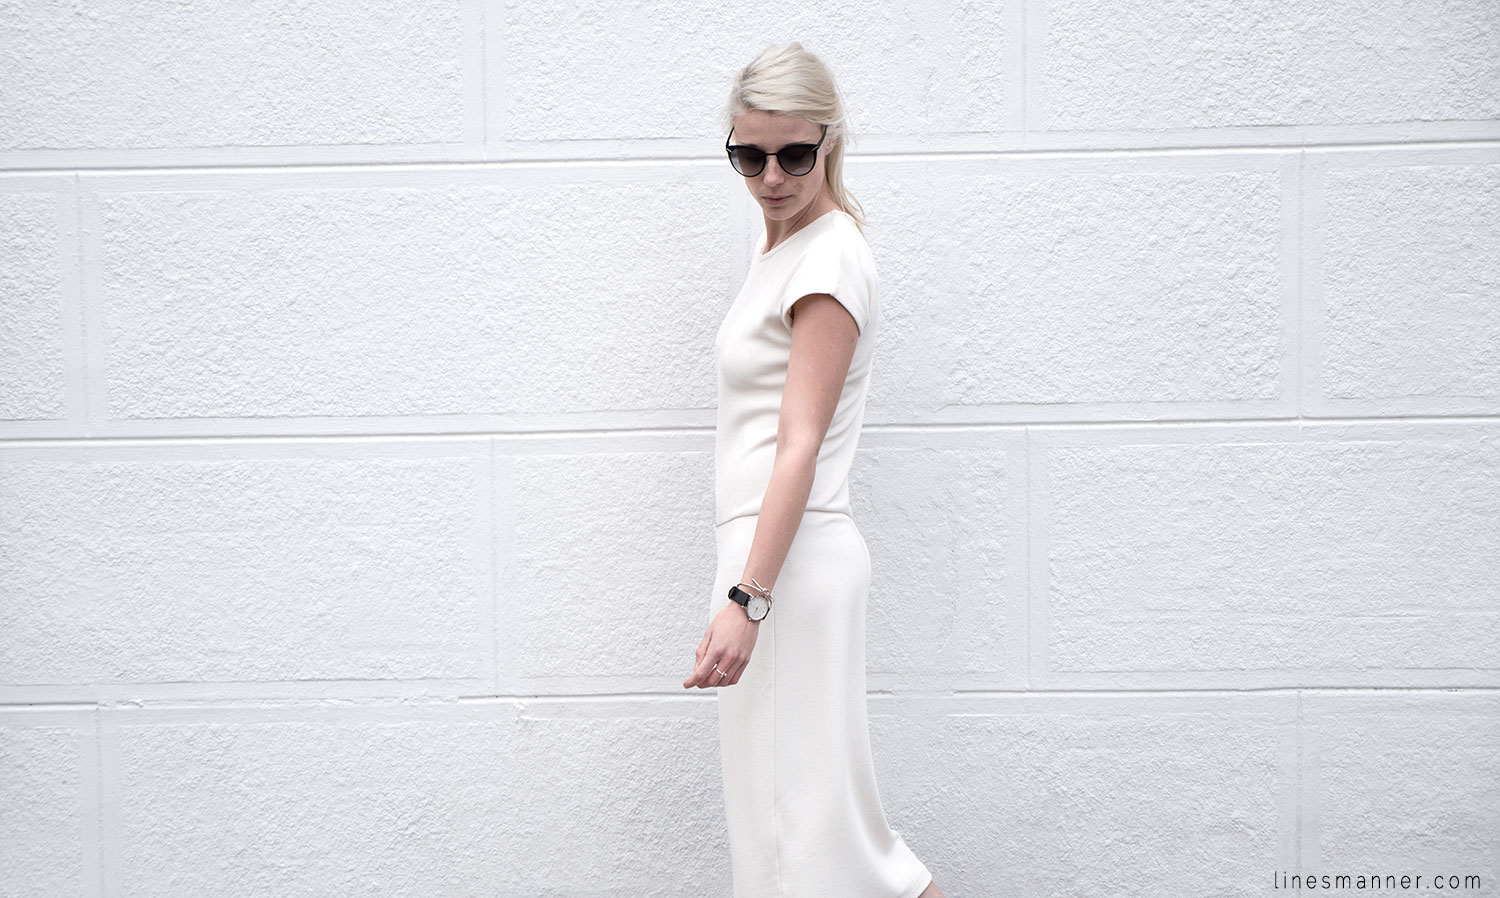 Lines-Manner-Whiteout-Fashion-Outfit-White-Bright-Simplicity-Elegance-Effortless-Anecdote-Degree_Seven-Quality-Summer-Minimal-Essential-Modern-Sleek-Details-8